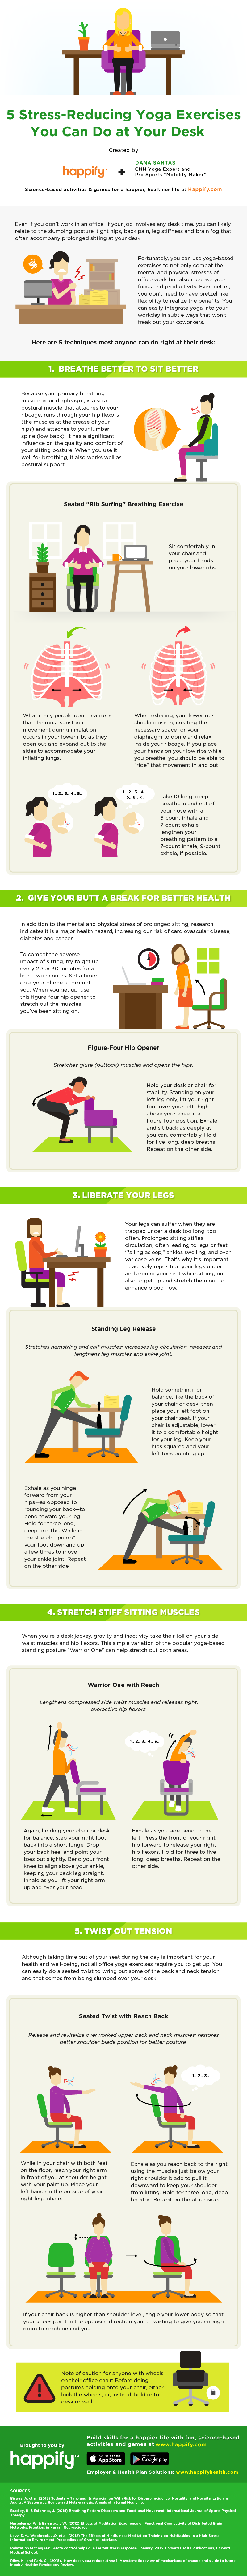 Infographic 5 Stress Busting Yoga Exercises You Can Do From Your Desk Happify Daily